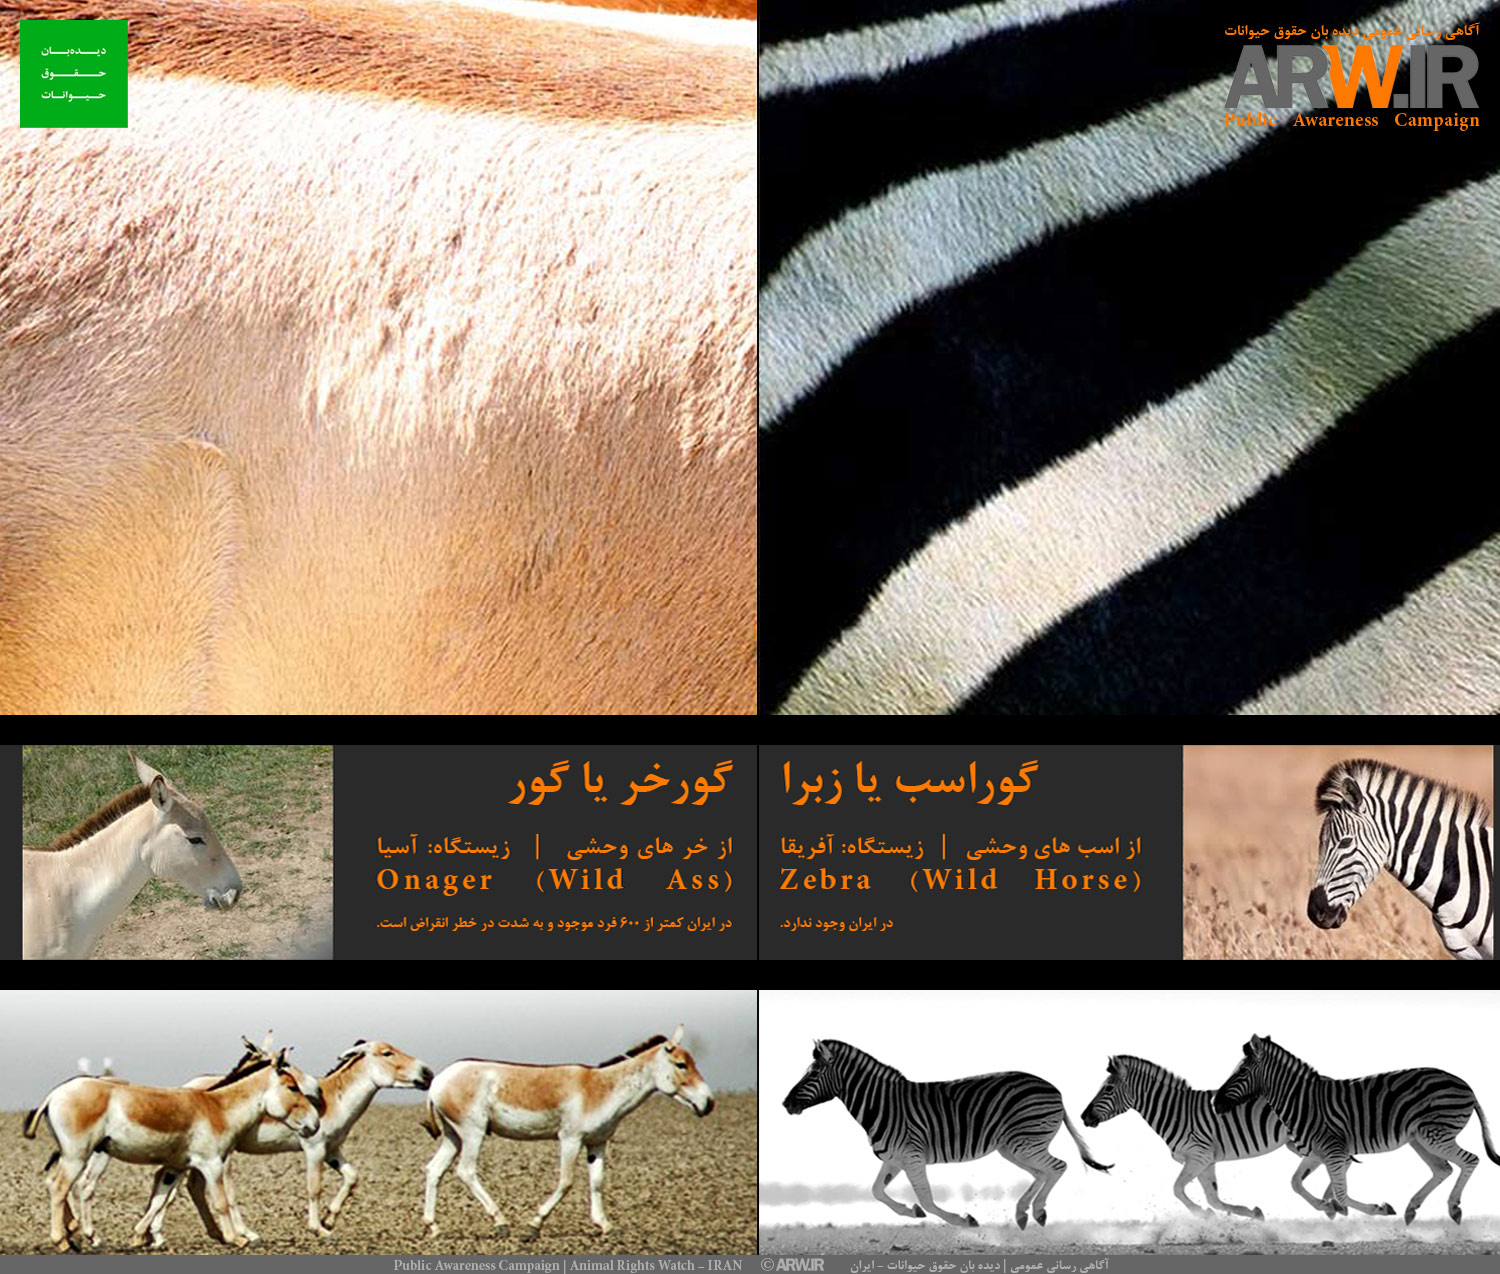 Animal-Rights-Watch-ARW-5595-Public-Awareness-Campaign